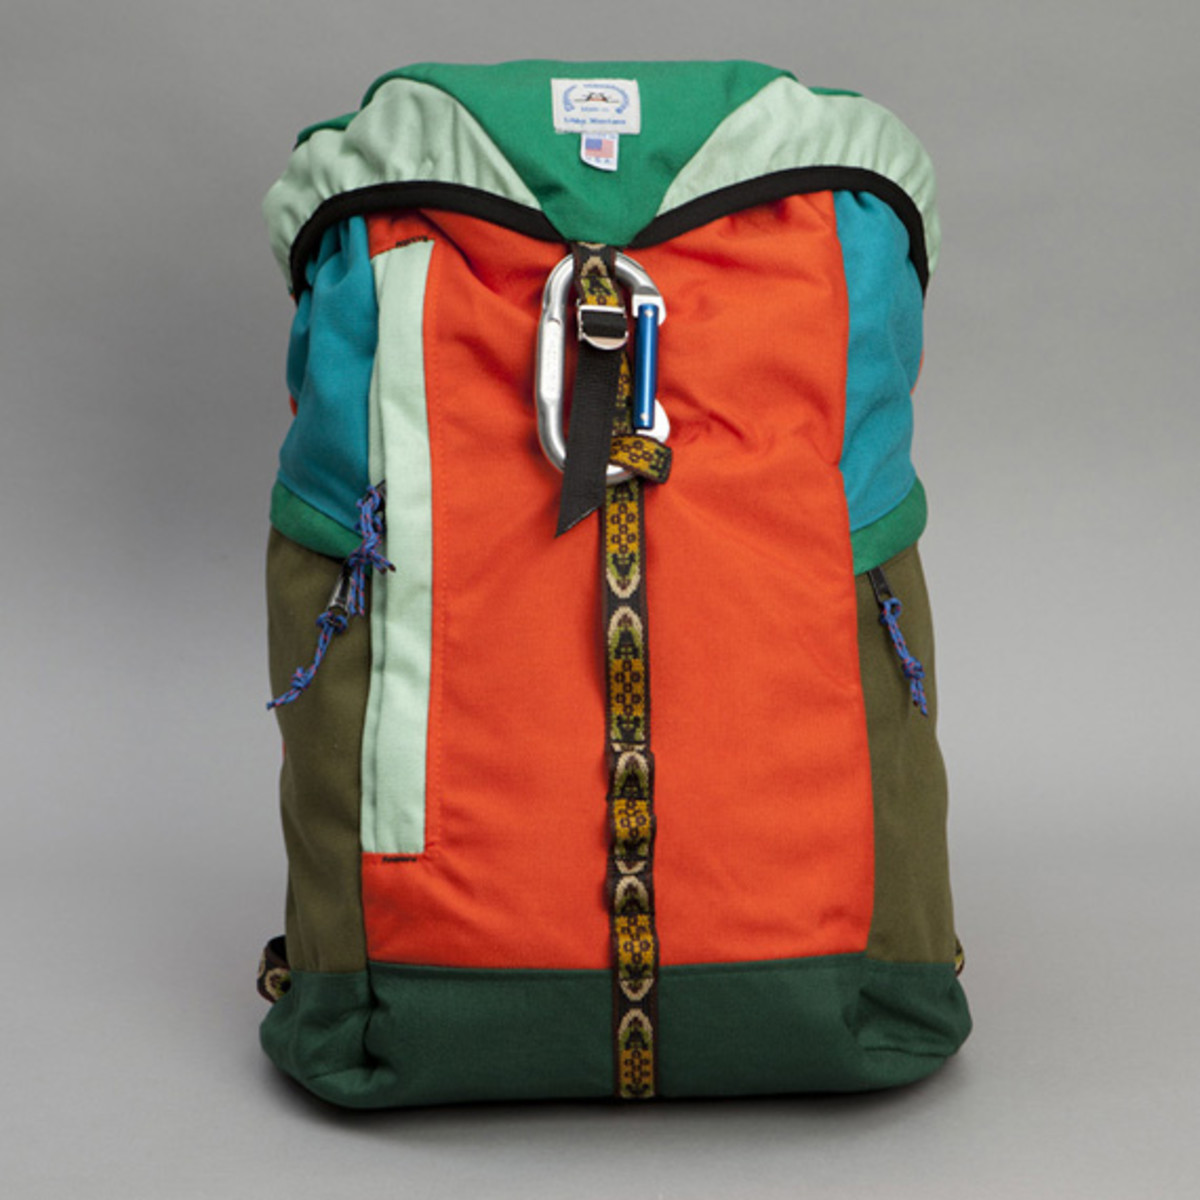 epperson-mountaineering-large-climb-pack-08